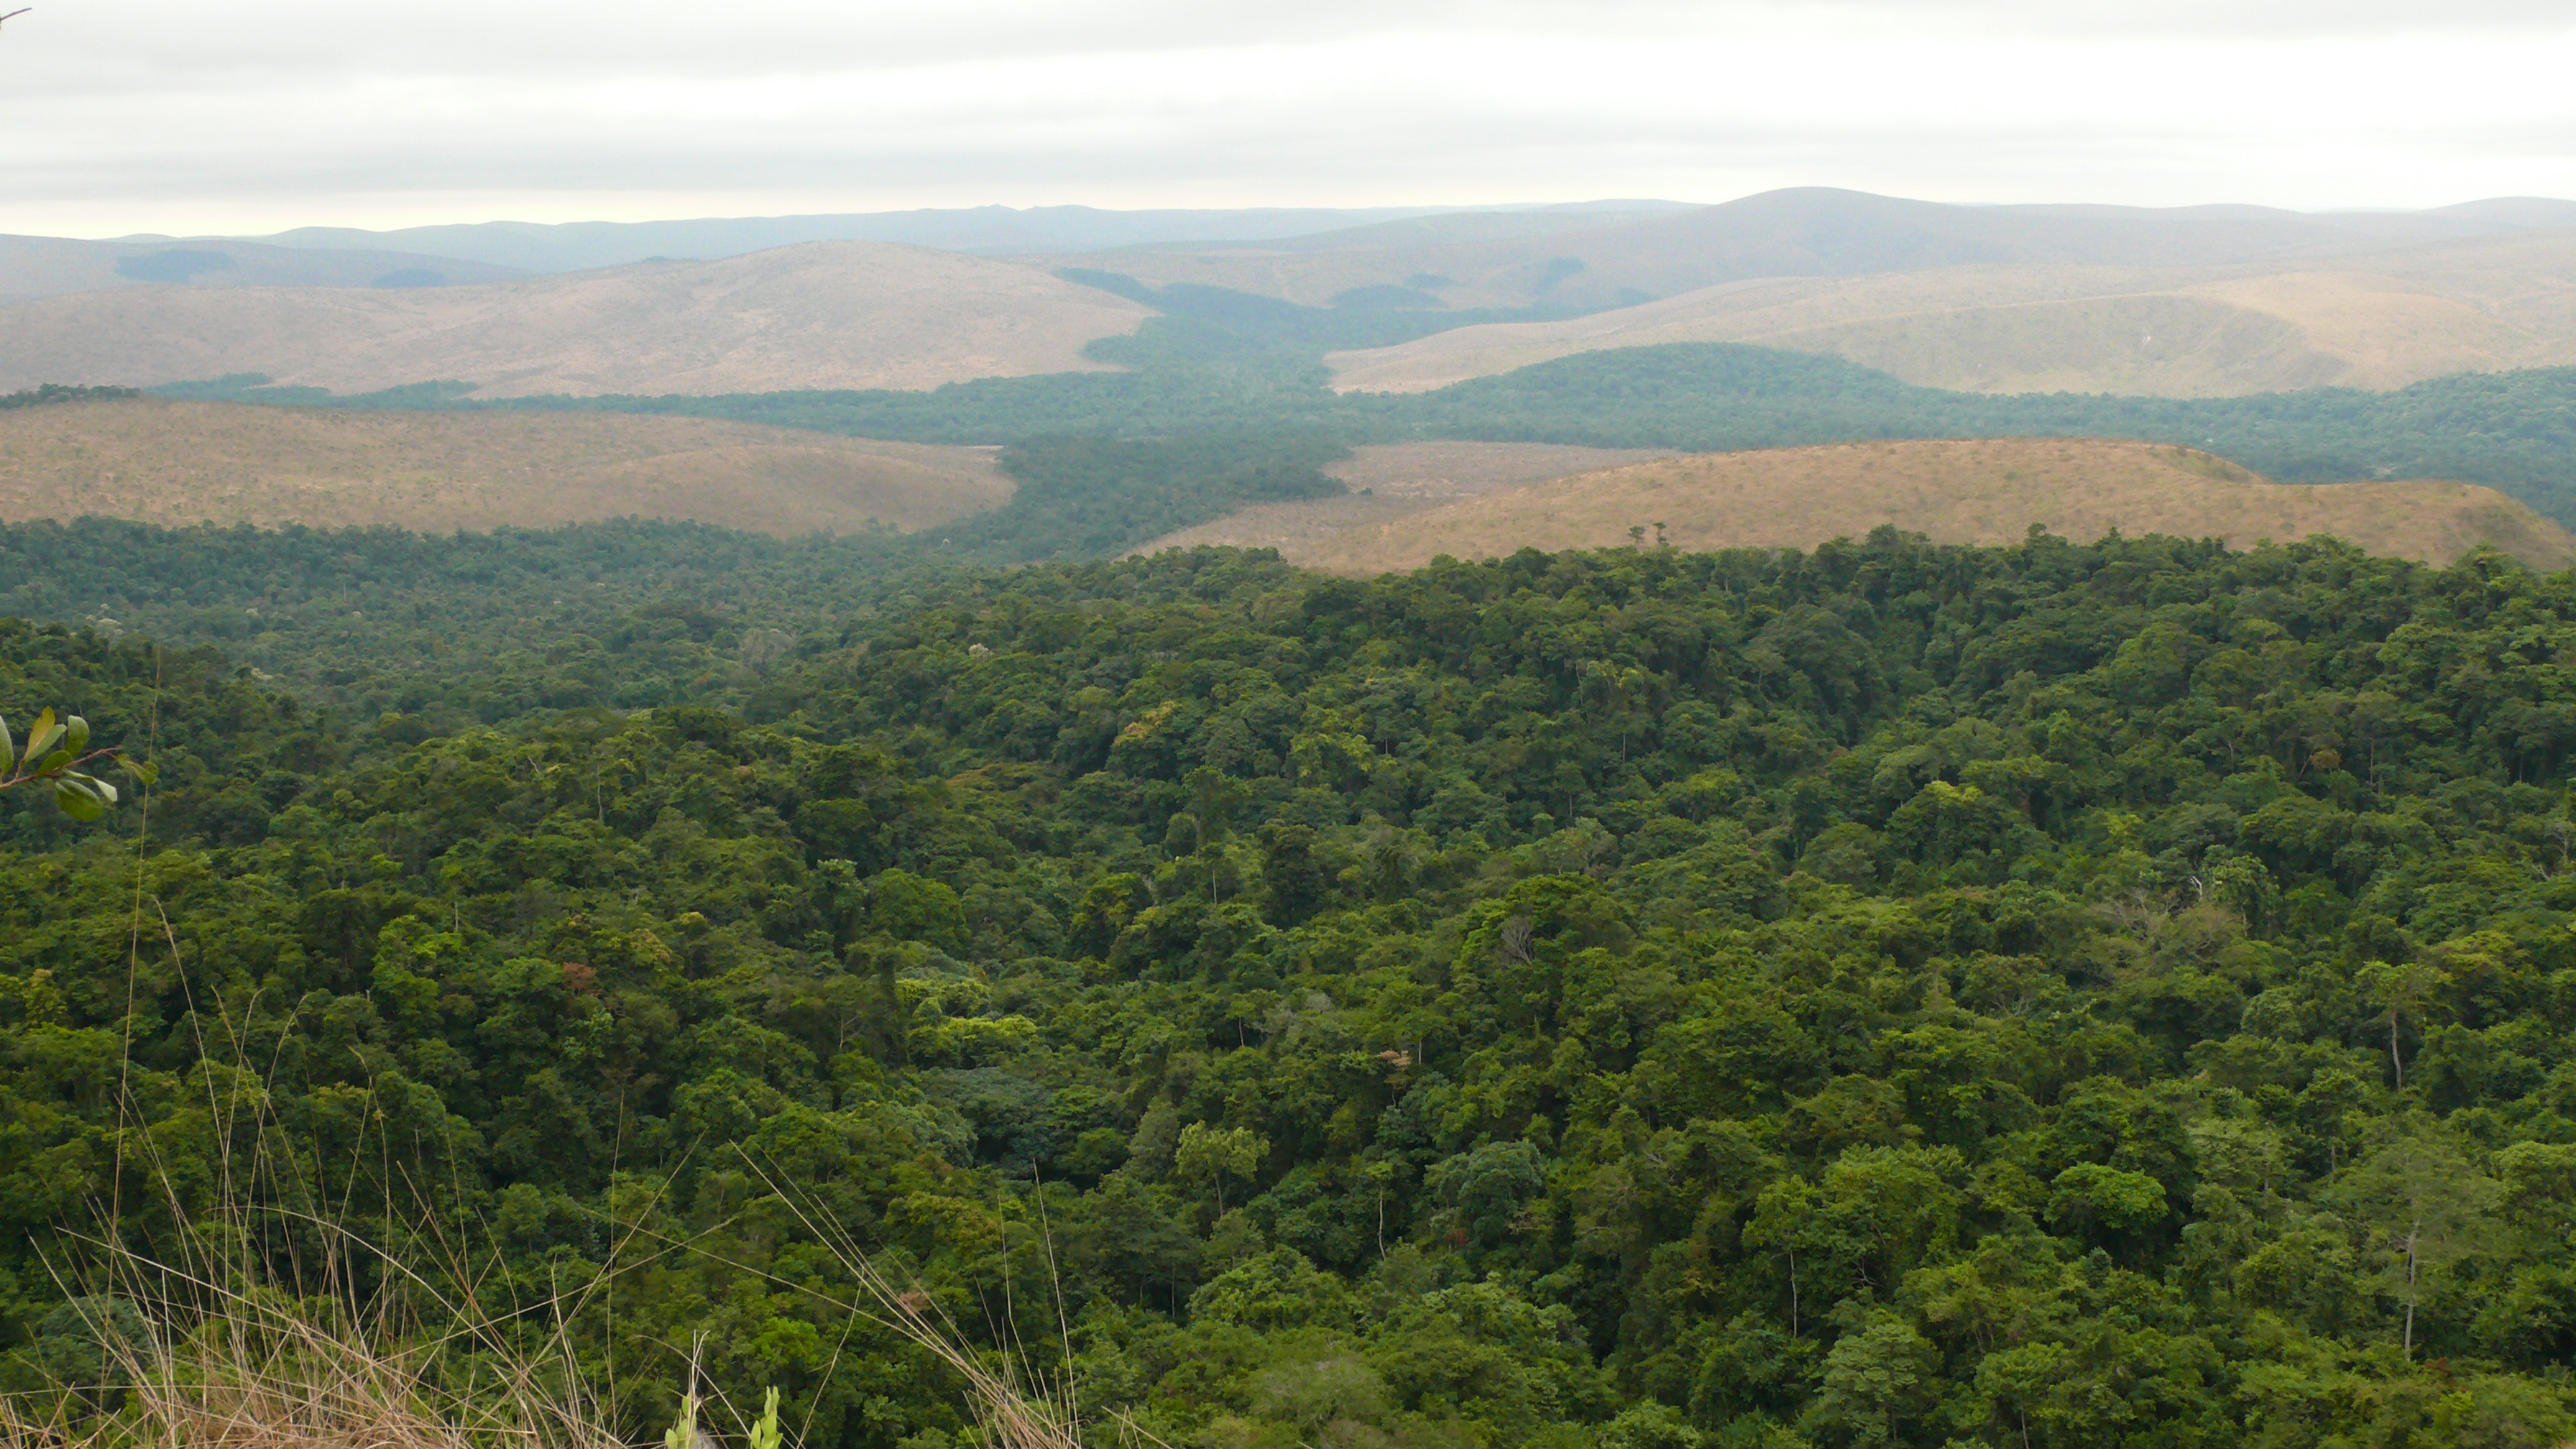 Bateke Plateau National Park is situated at the transition between forest and savannah habitats